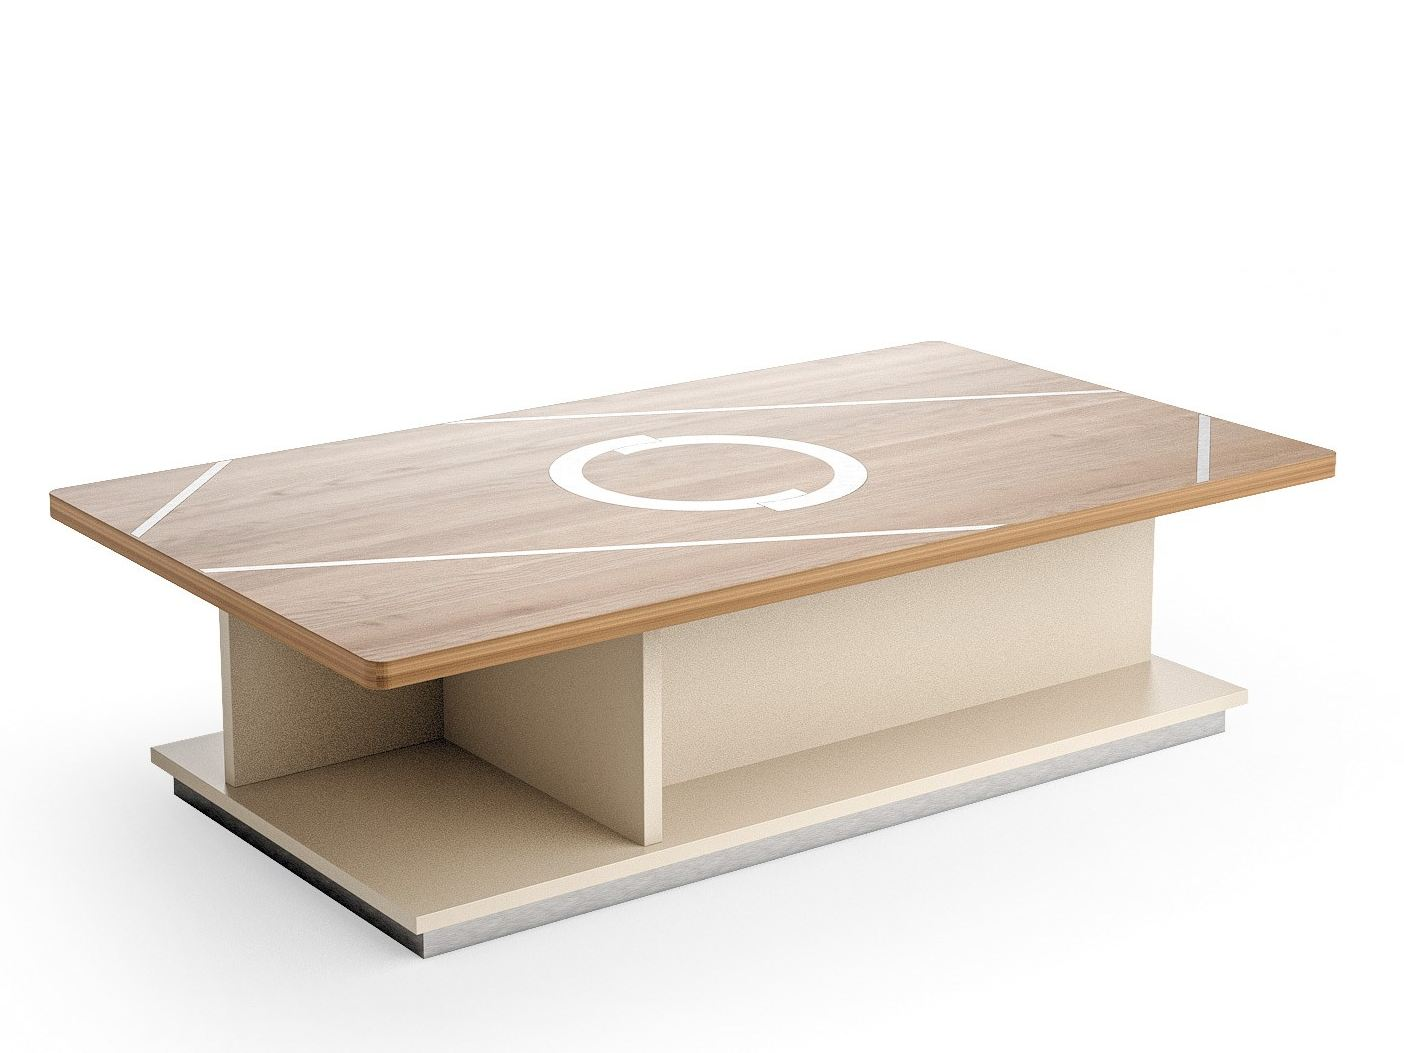 Rhombus Rectangular Coffee Table Concept Collection By Caroti